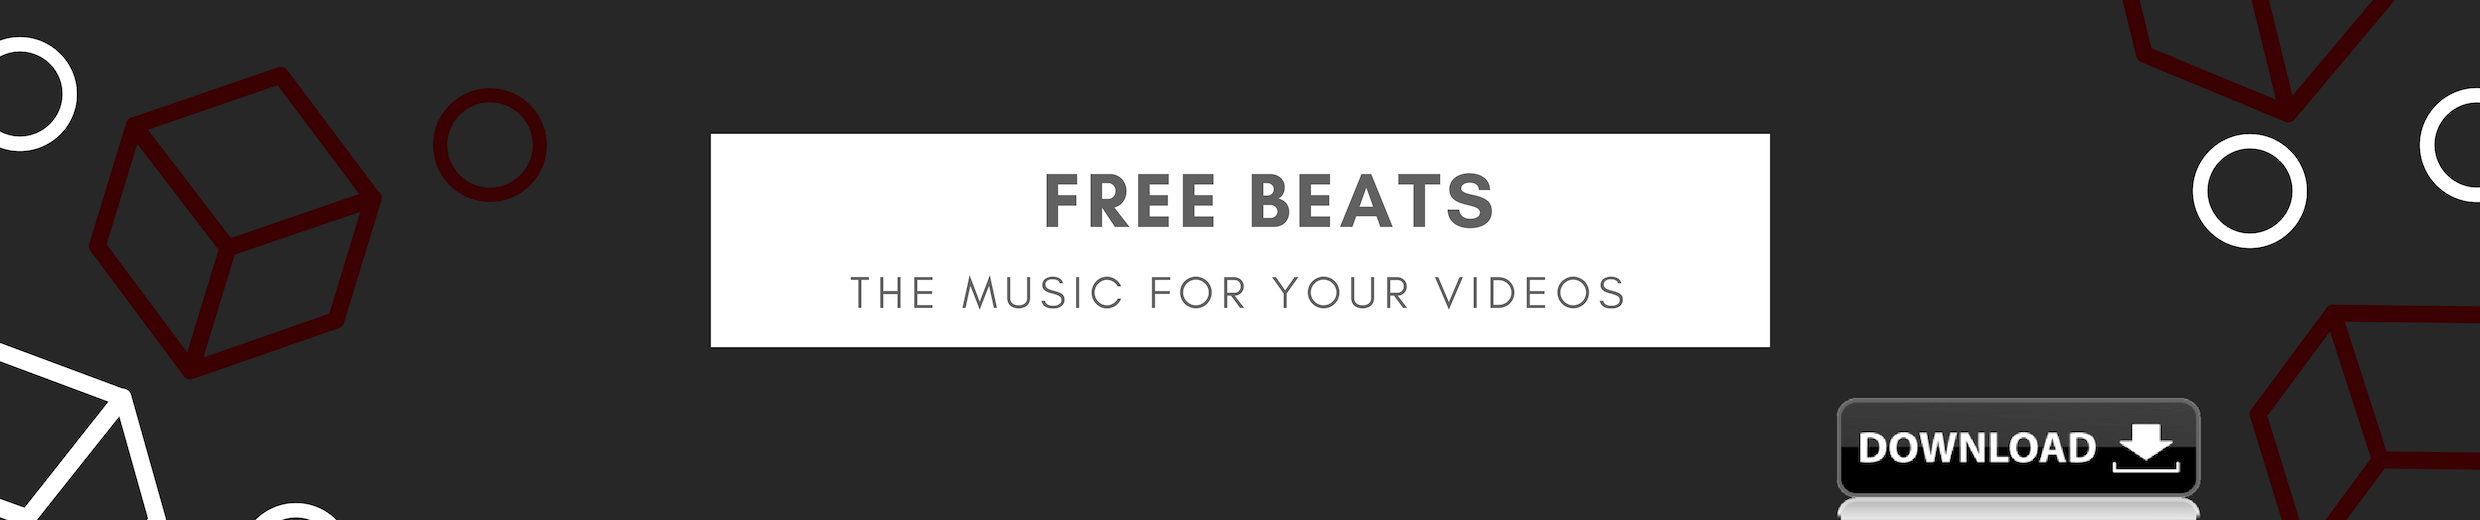 GilCardoso free music free beats download